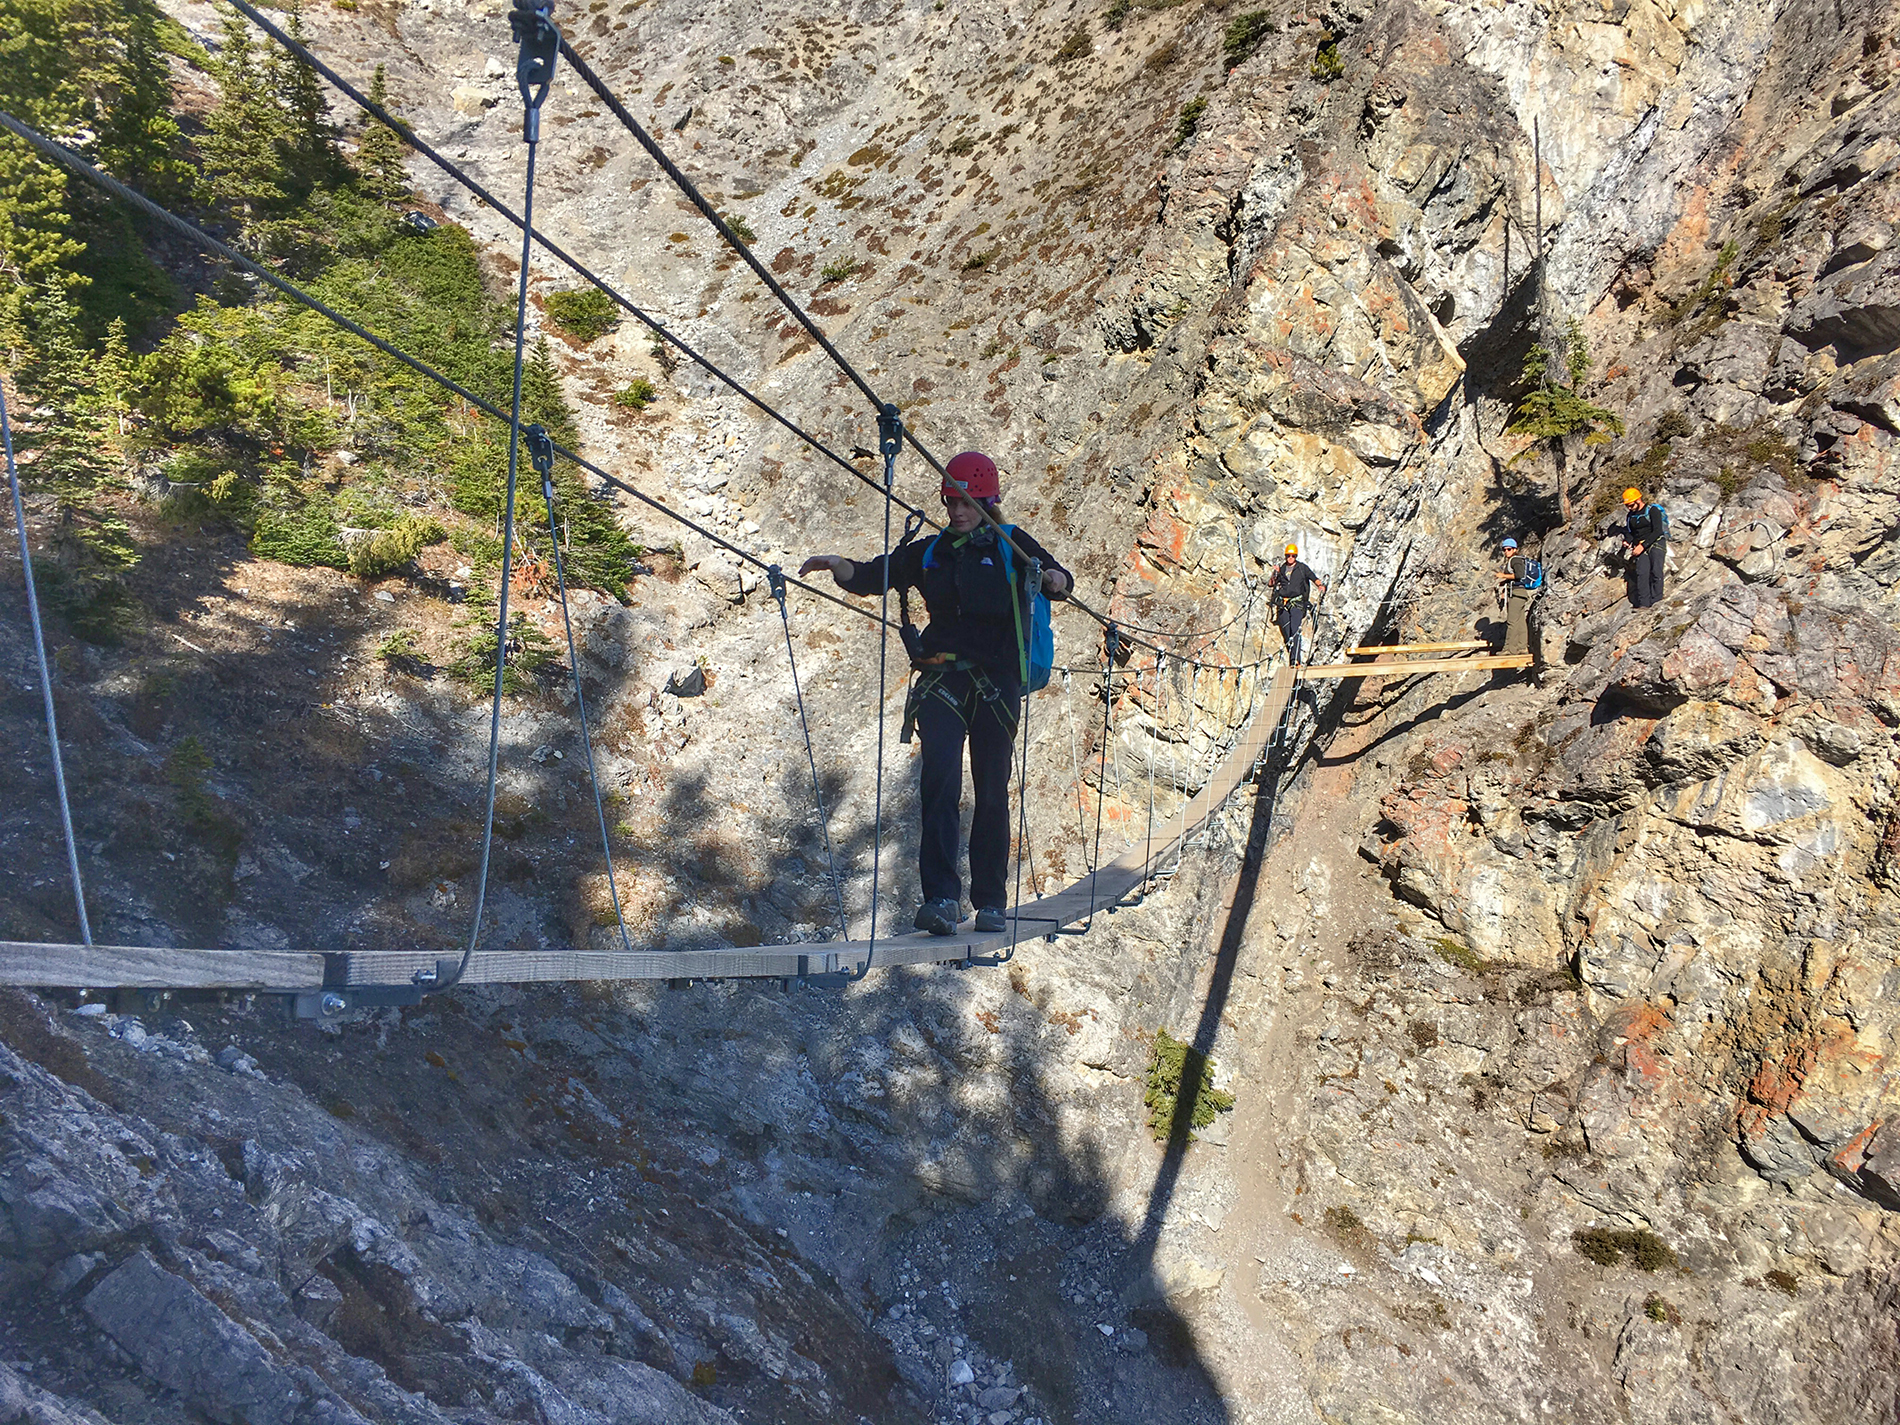 Don't look down while crossing the suspension bridge in the mountains of Banff National Park!